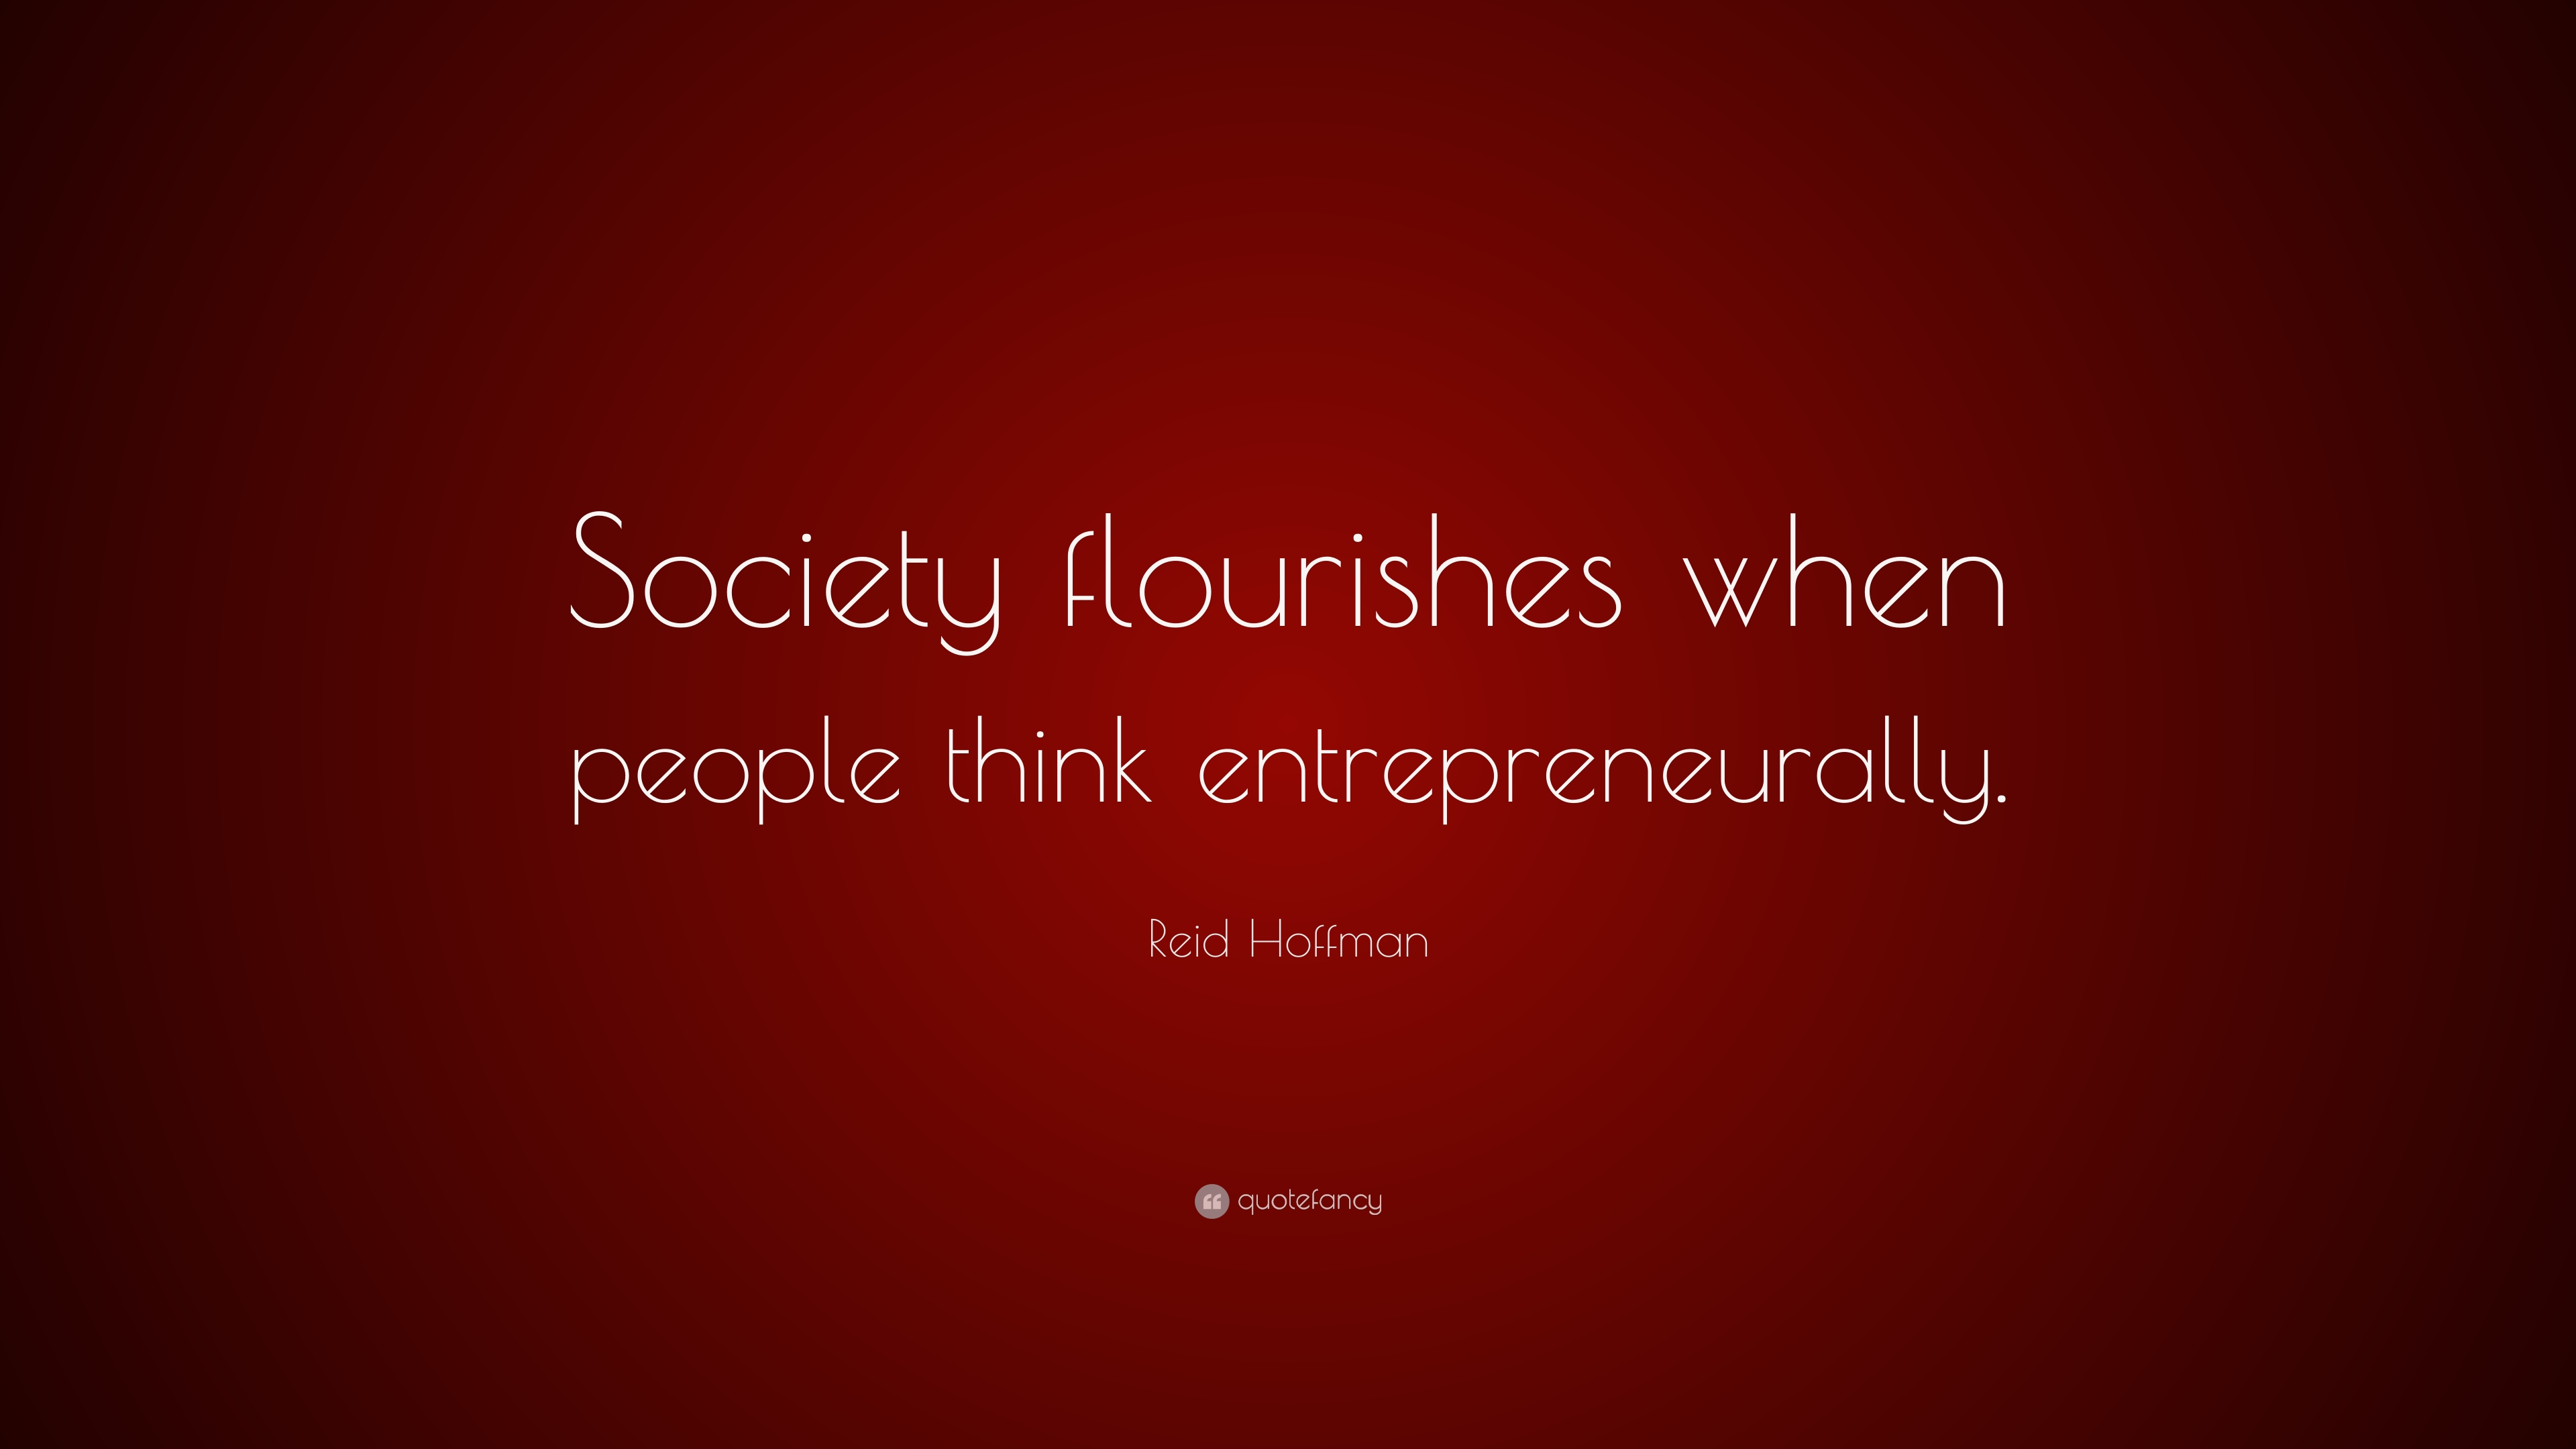 10 Wallpapers. Reid Hoffman Quote: U201cSociety Flourishes When People Think  Entrepreneurally.